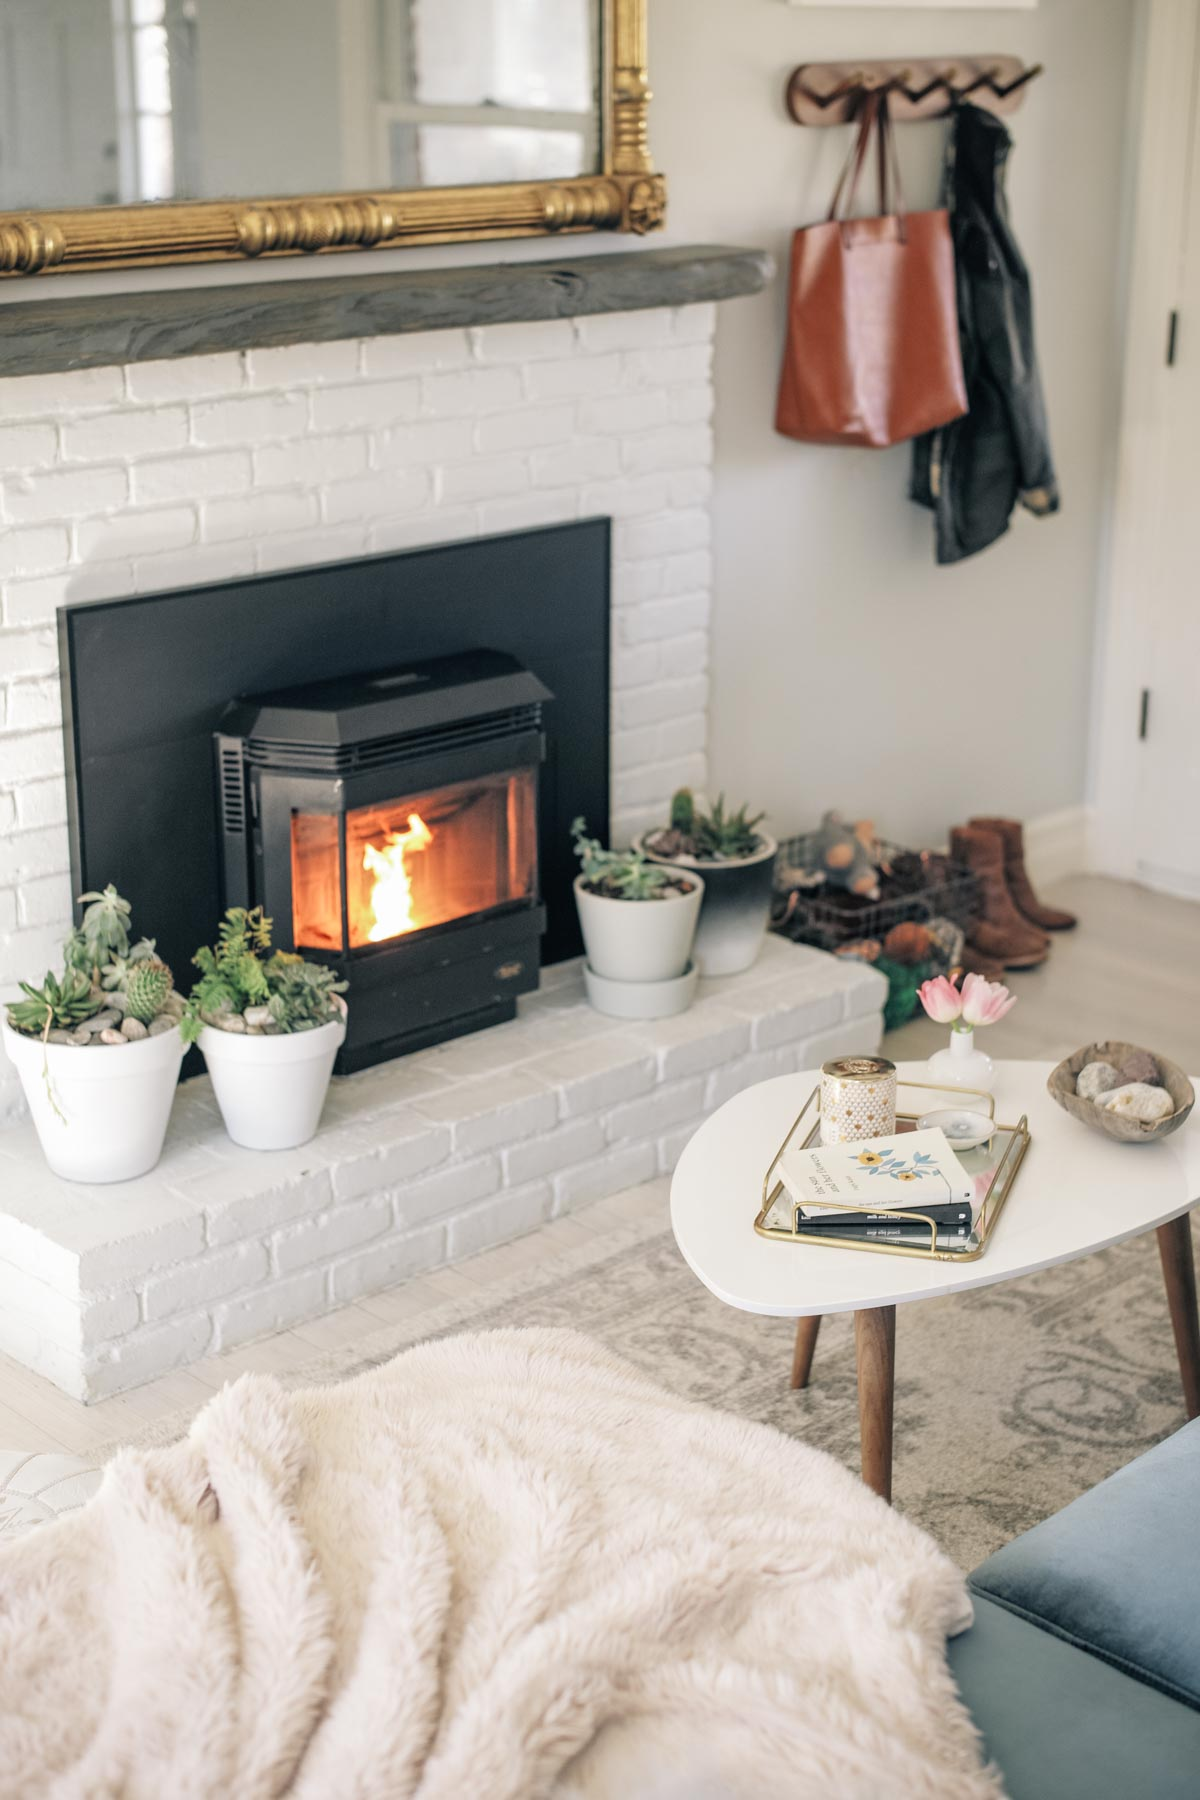 Jess Ann Kirby's home renovations includes a white brick mantle and pellet stove